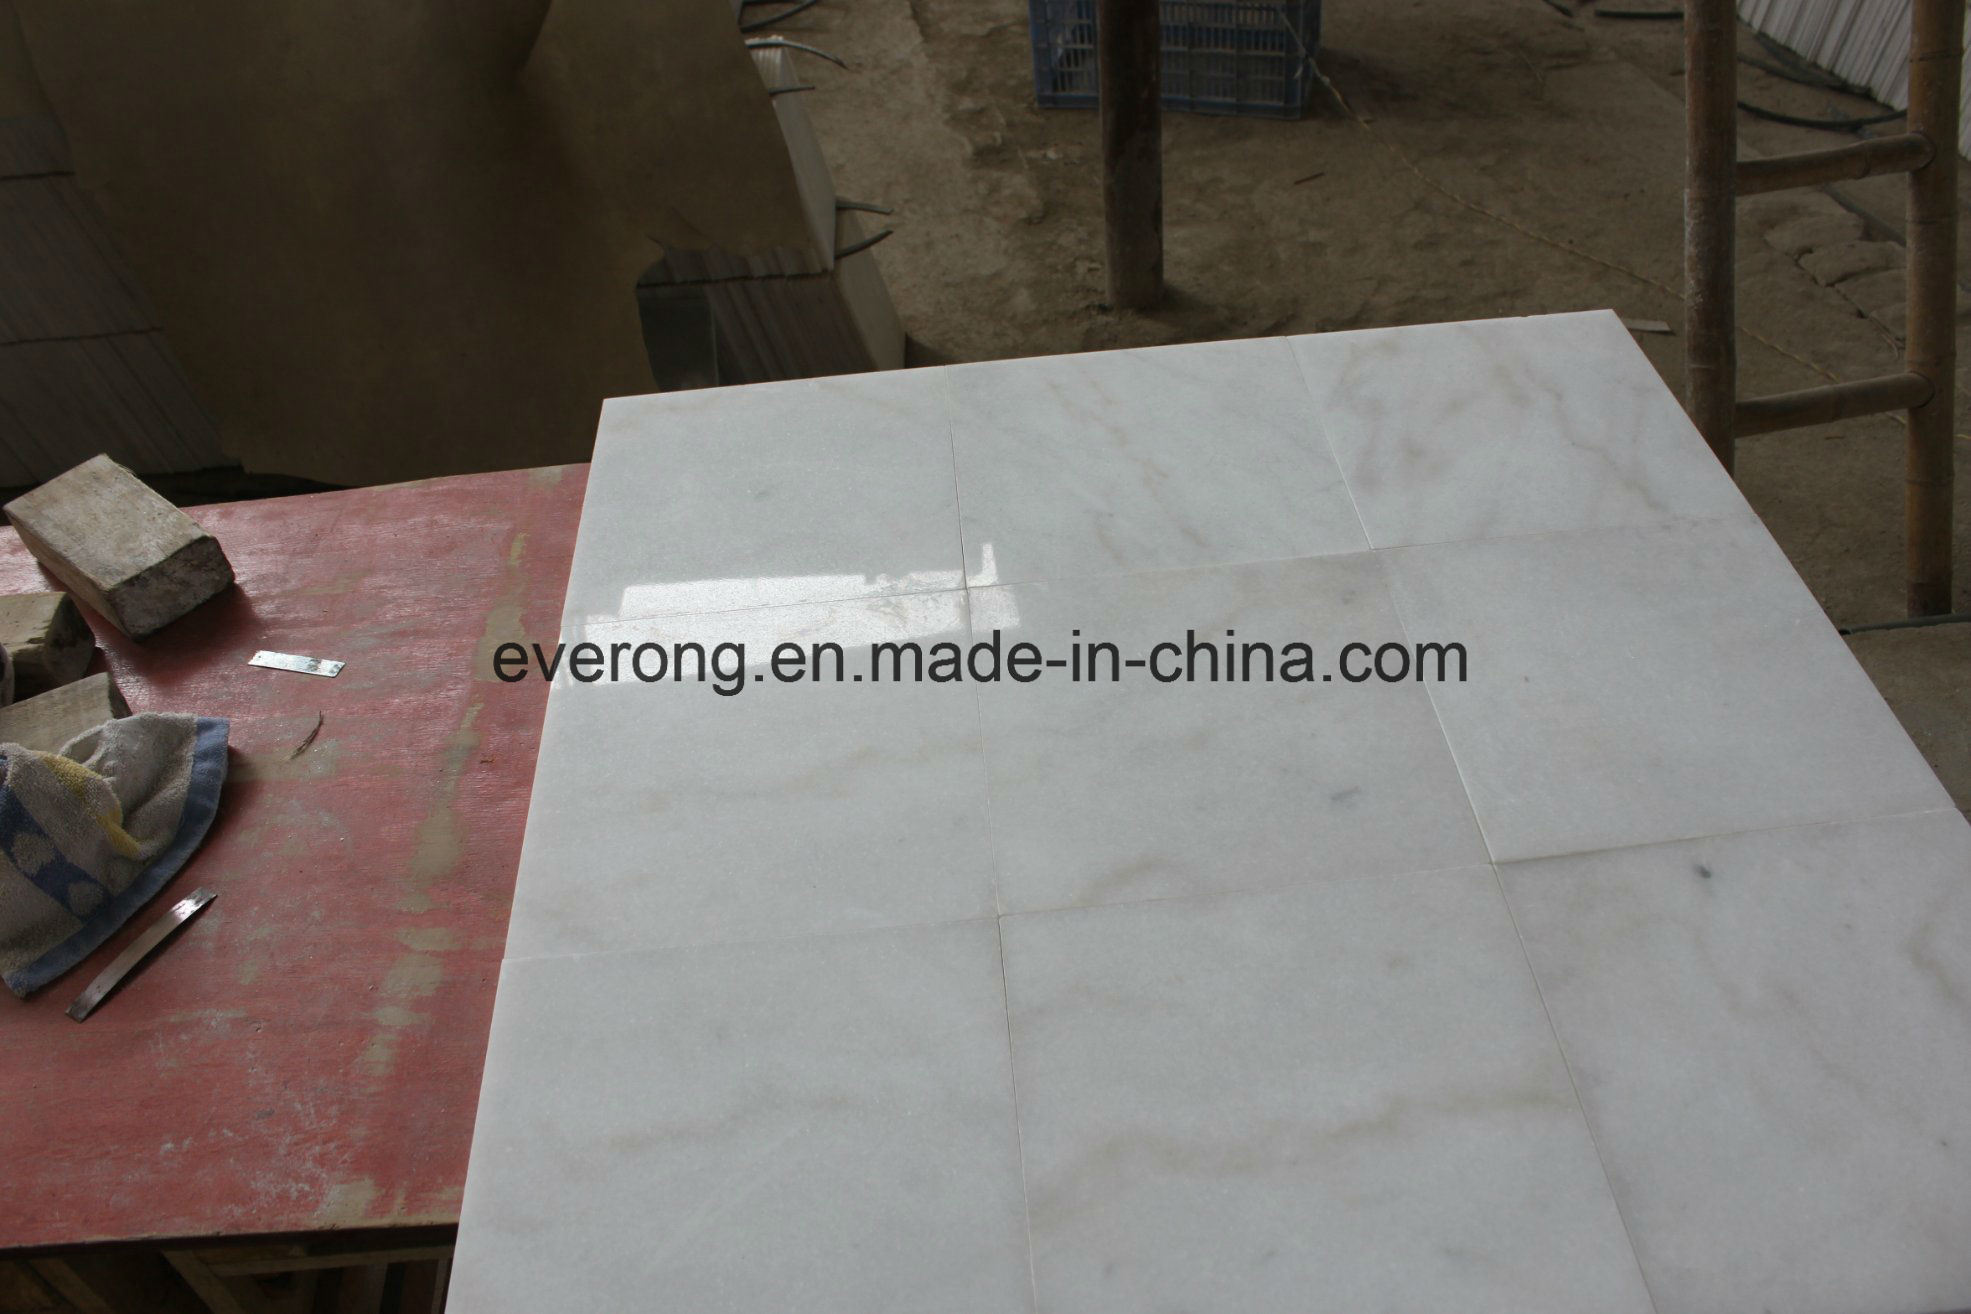 Guangxi White Marble Tile With Grey Veins For Floorwall Cladding